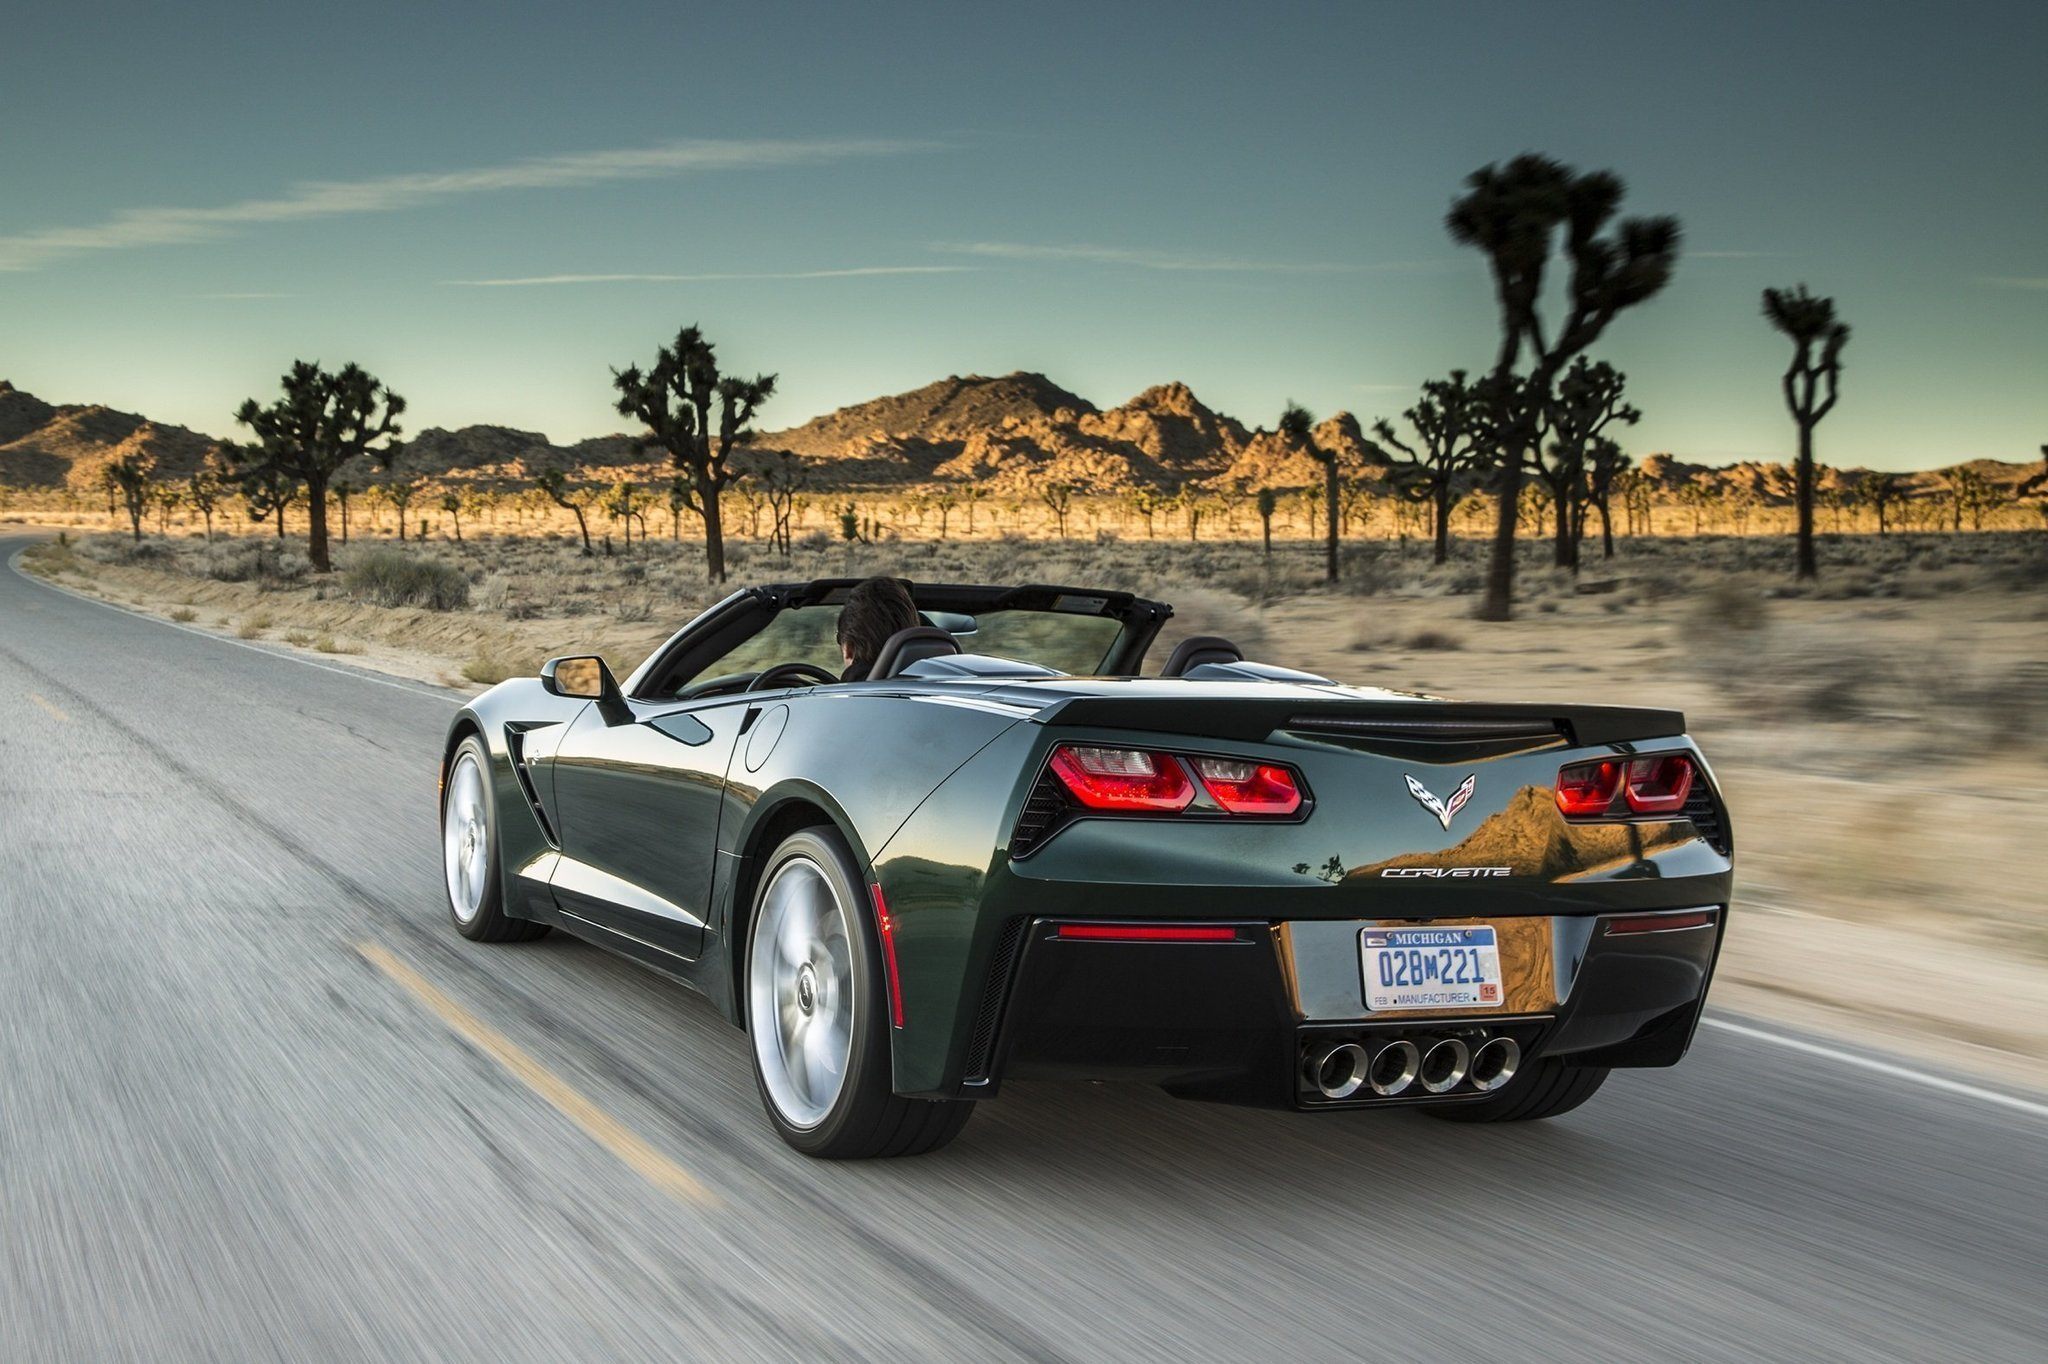 460 hp stingray convertible is a rowdy v8 smile maker the san diego union tribune. Black Bedroom Furniture Sets. Home Design Ideas